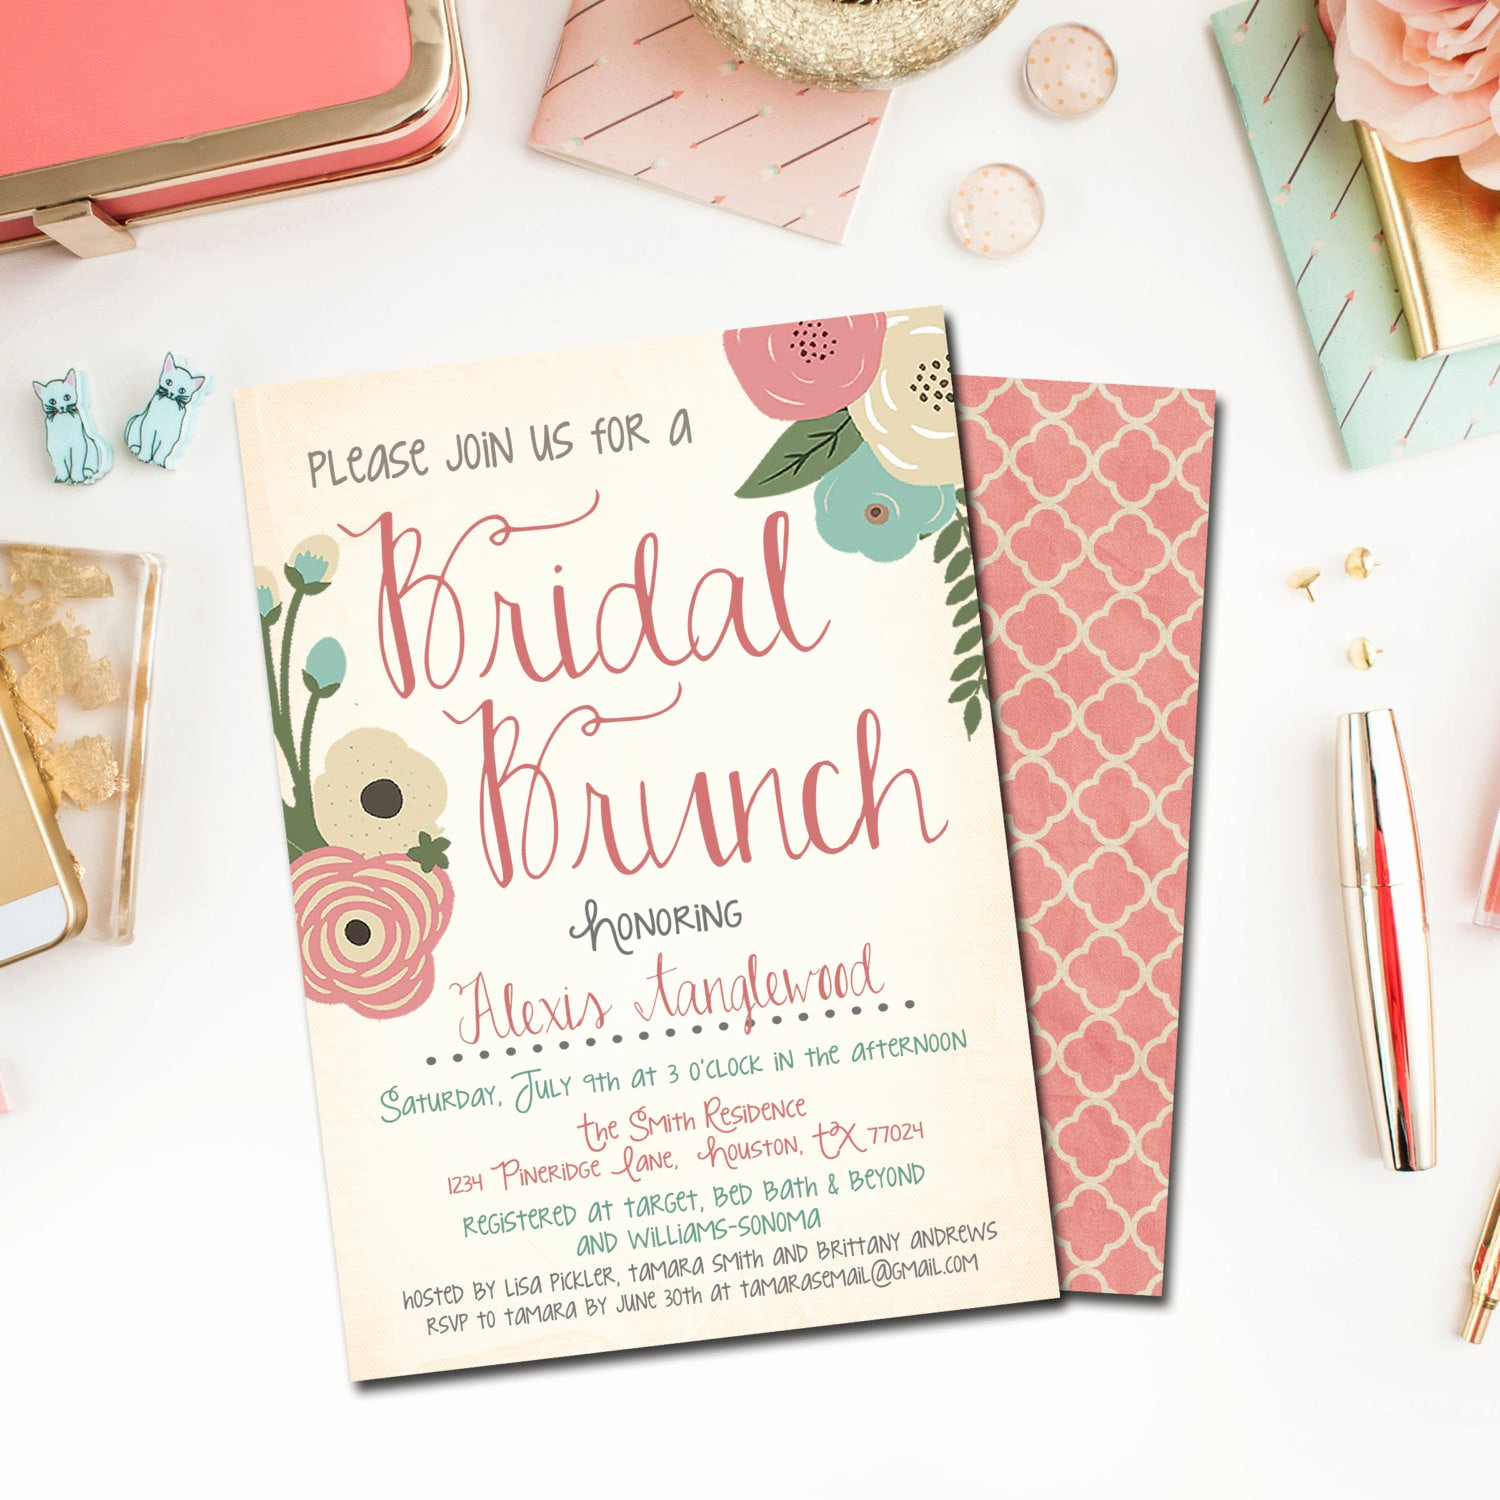 Printable Bridal Shower Invitations Beautiful Bridal Shower Invitation Bridal Shower Invite Bridal Shower